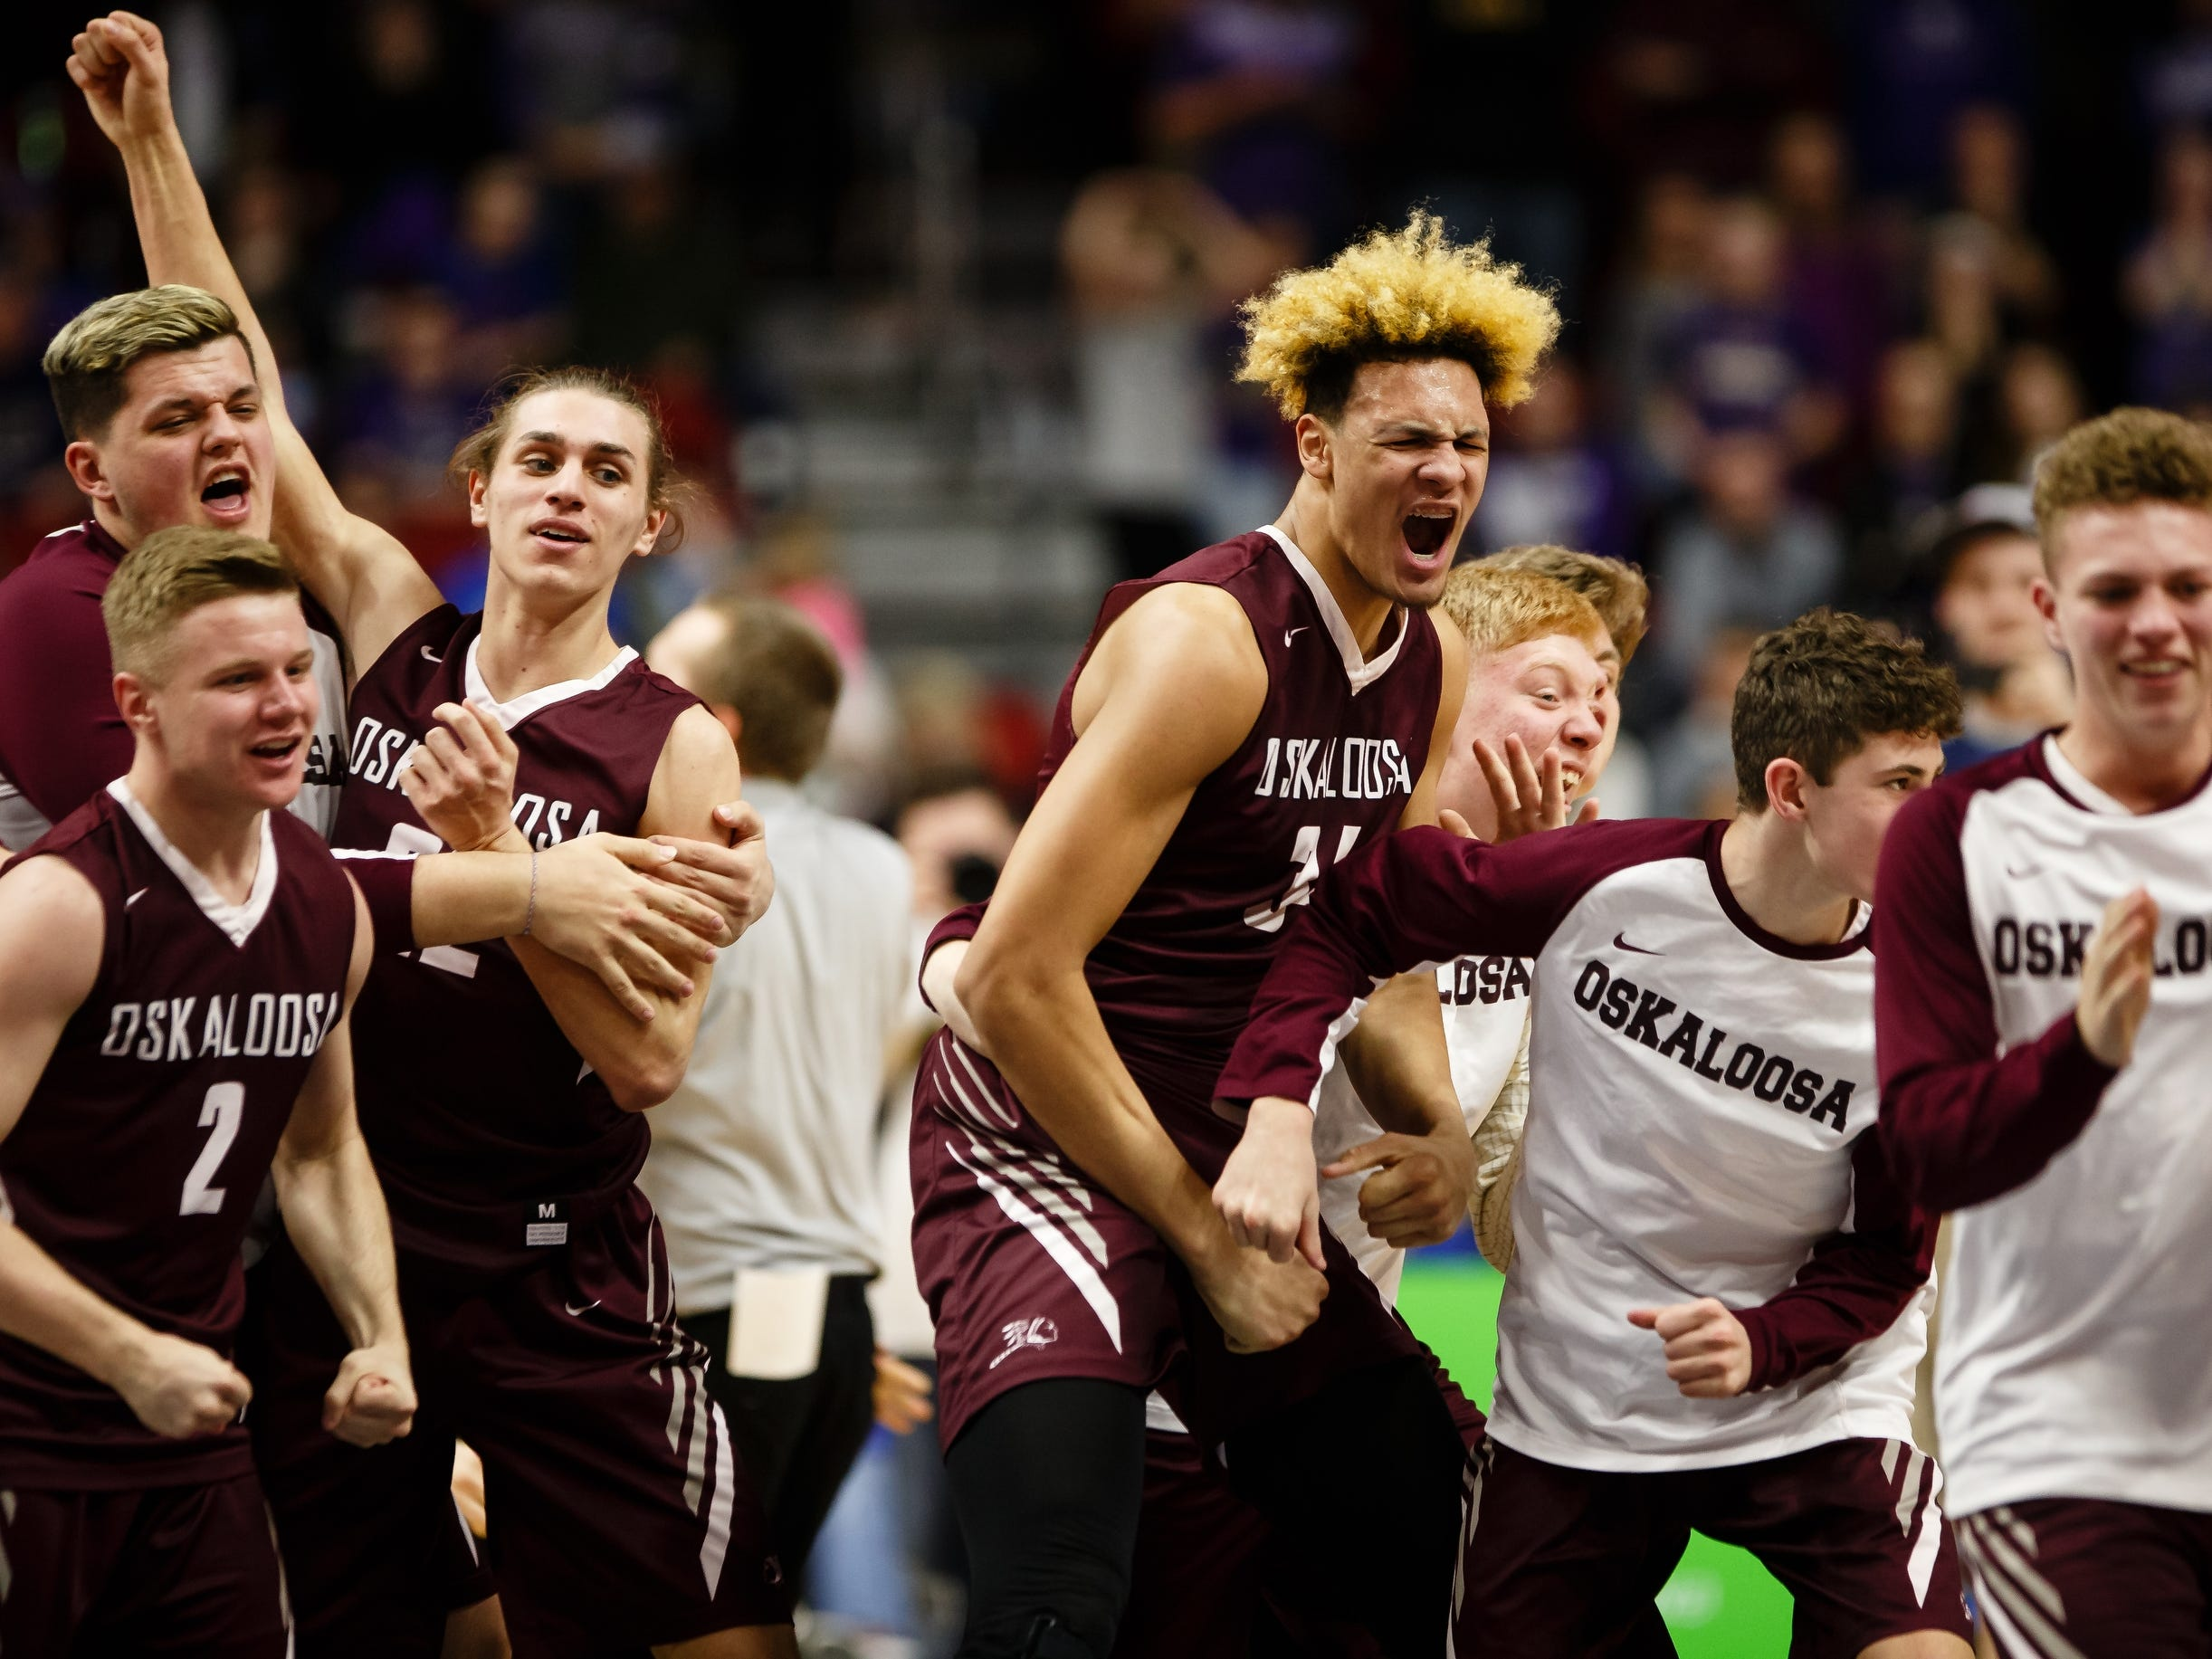 Oskaloosa celebrates its 48-44 win over Norwalk to win the boys 3A state basketball championship game on Friday, March 8, 2019 in Des Moines.